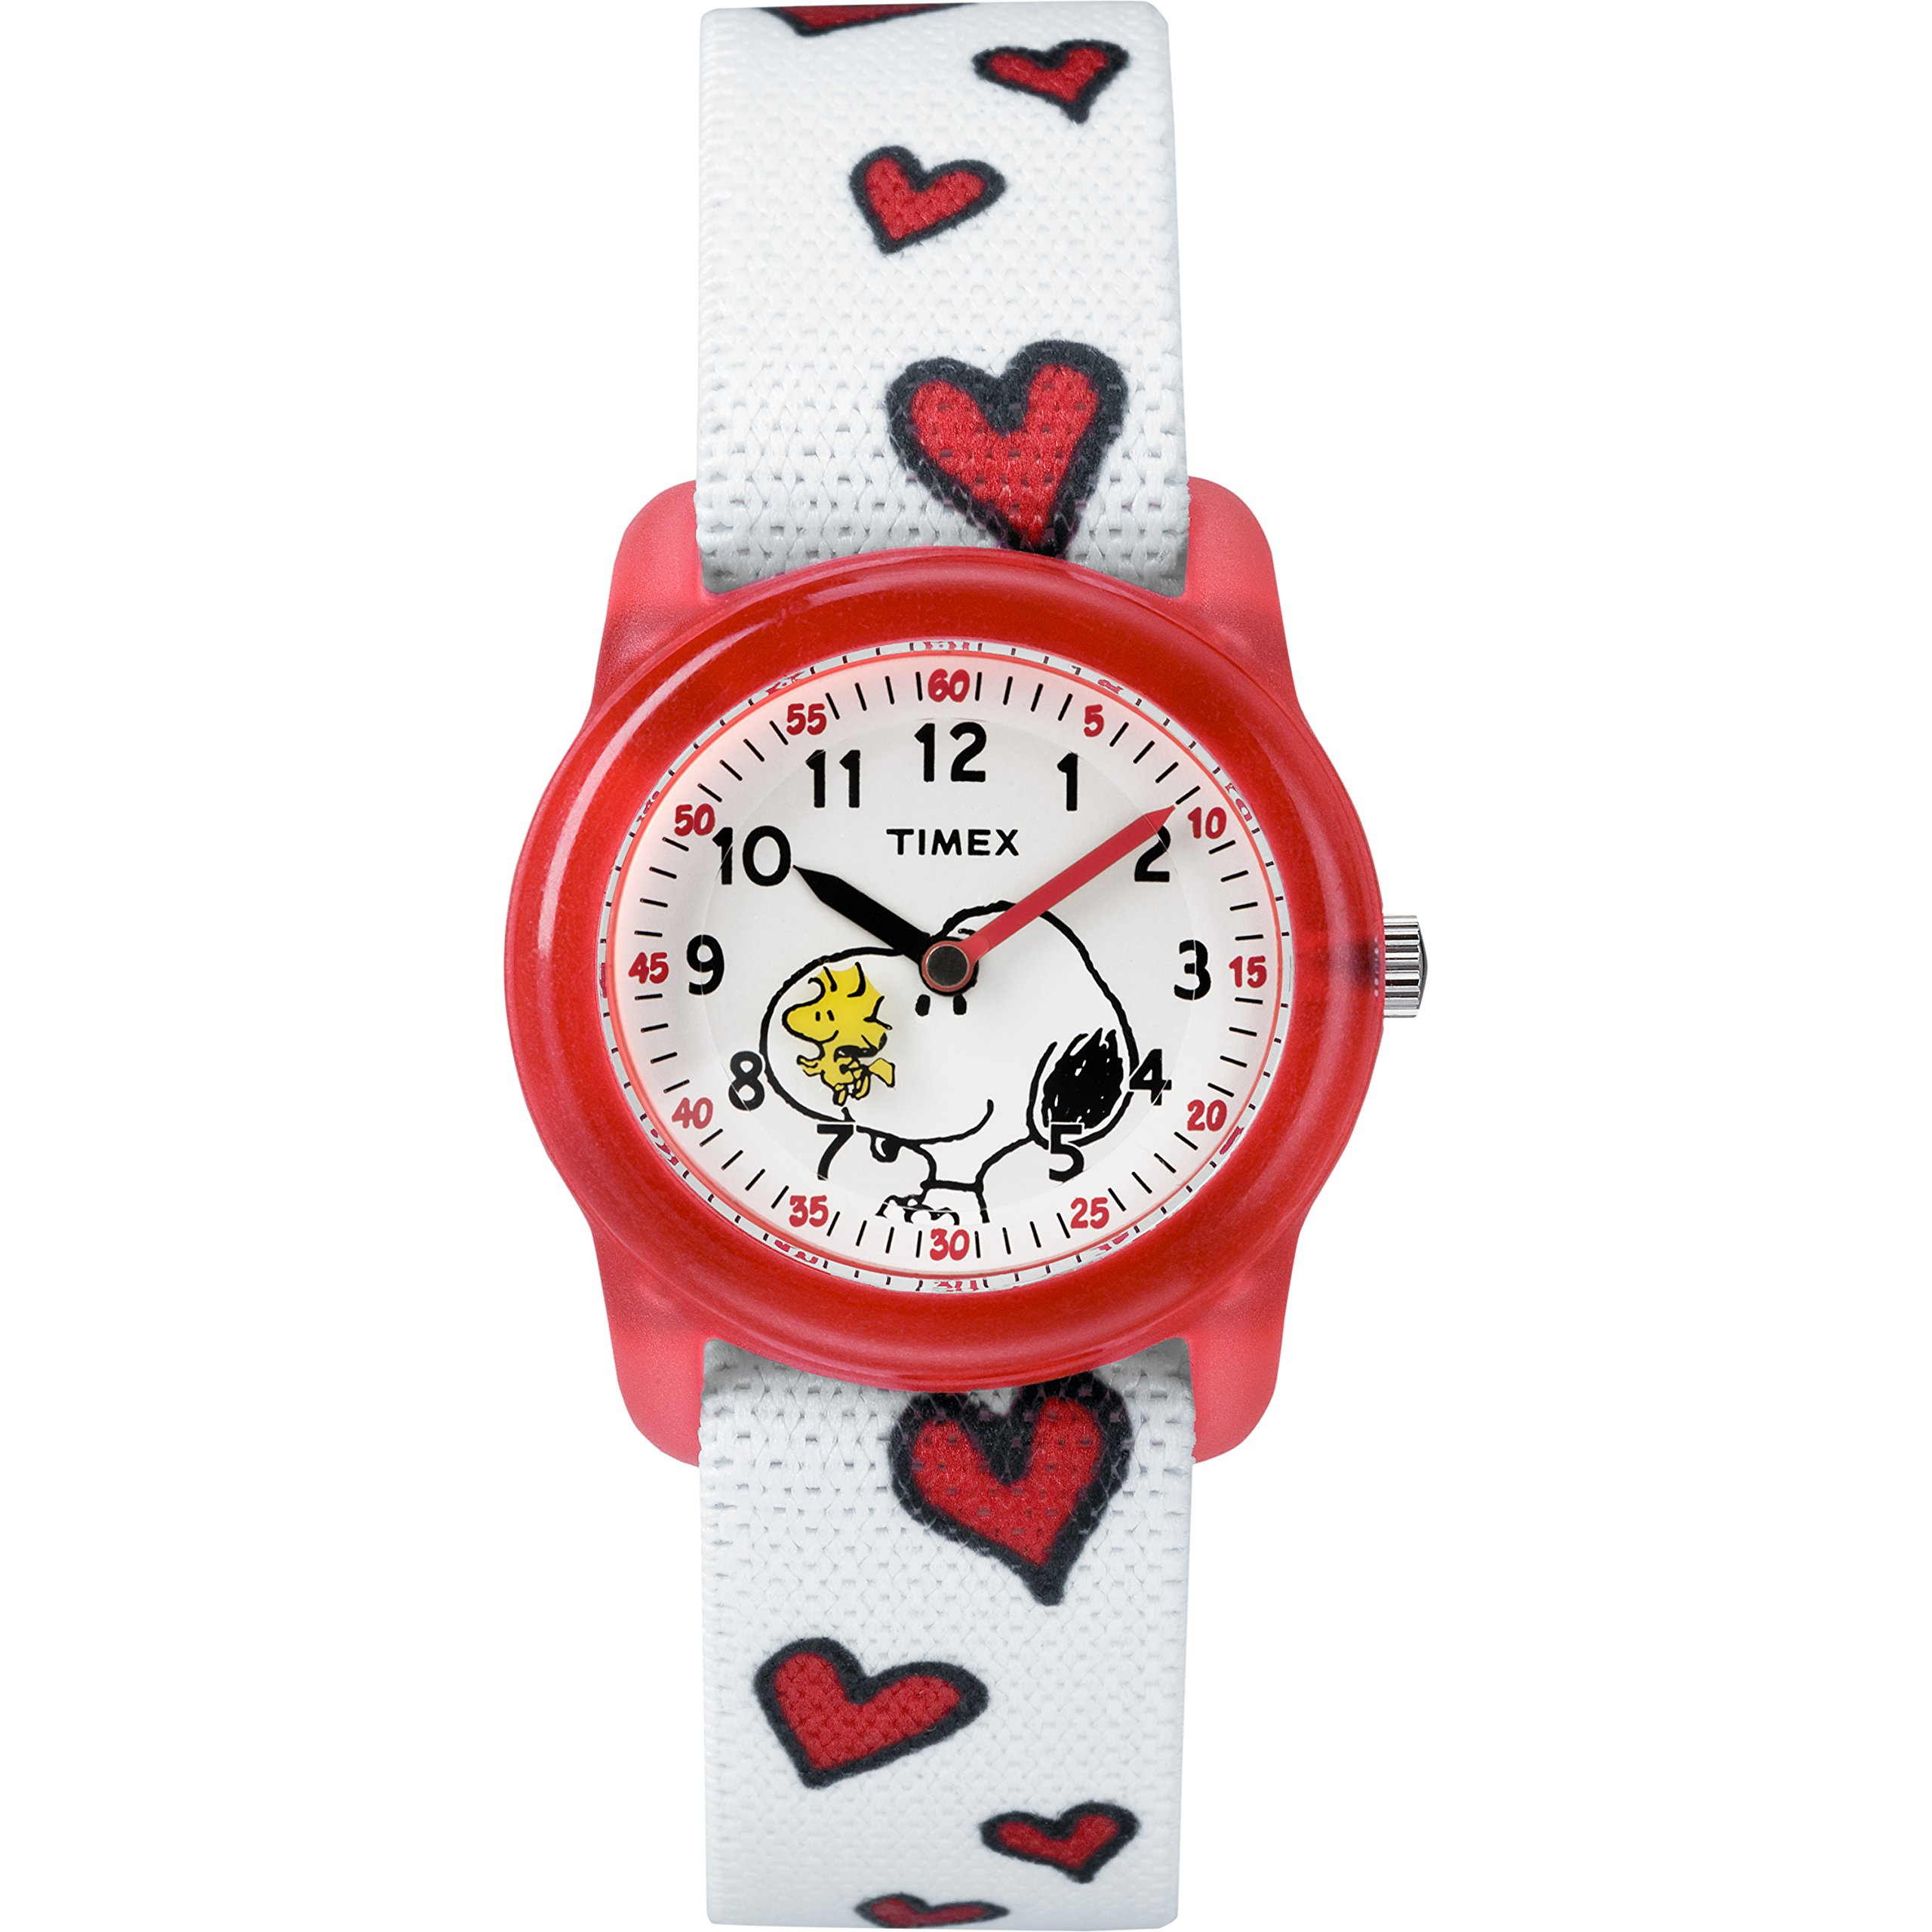 Timex Girls TW2R41600 Time Machines x Peanuts: Snoopy & Hearts Elastic Fabric Strap Watch by Timex